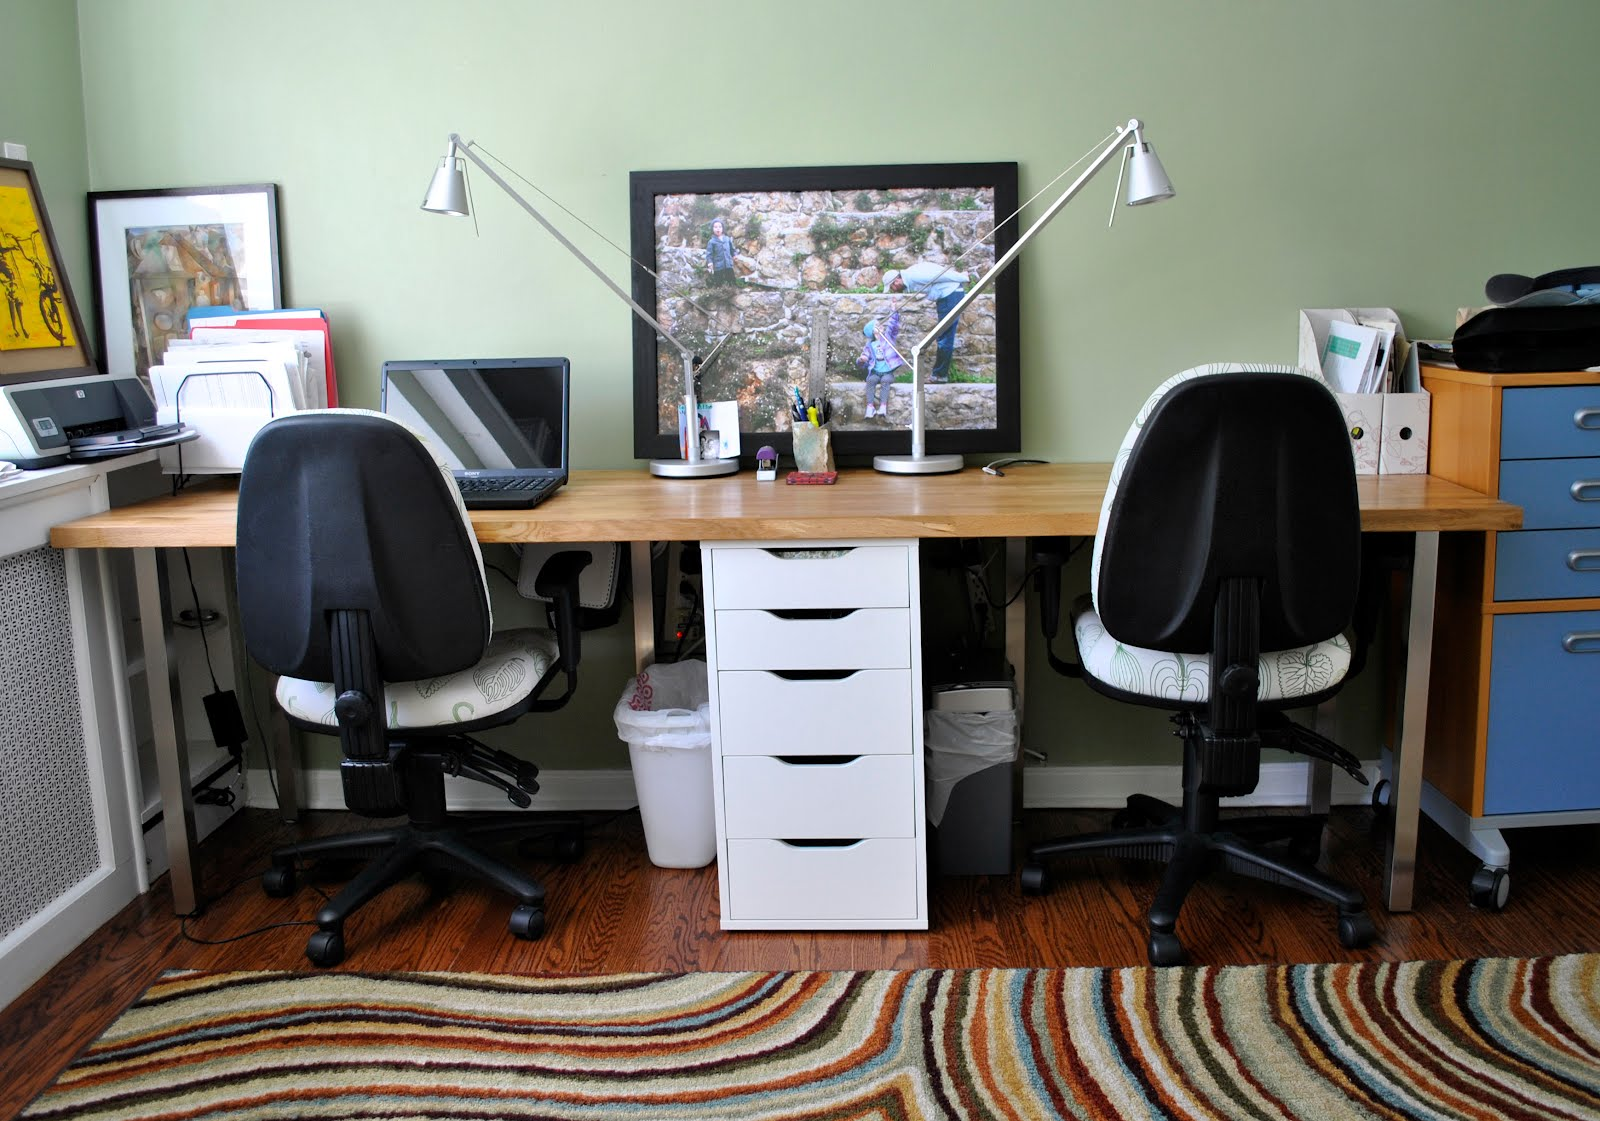 Office Desk For 2 Rousing And Smart Home Office Ideas With 2 Person Desk At